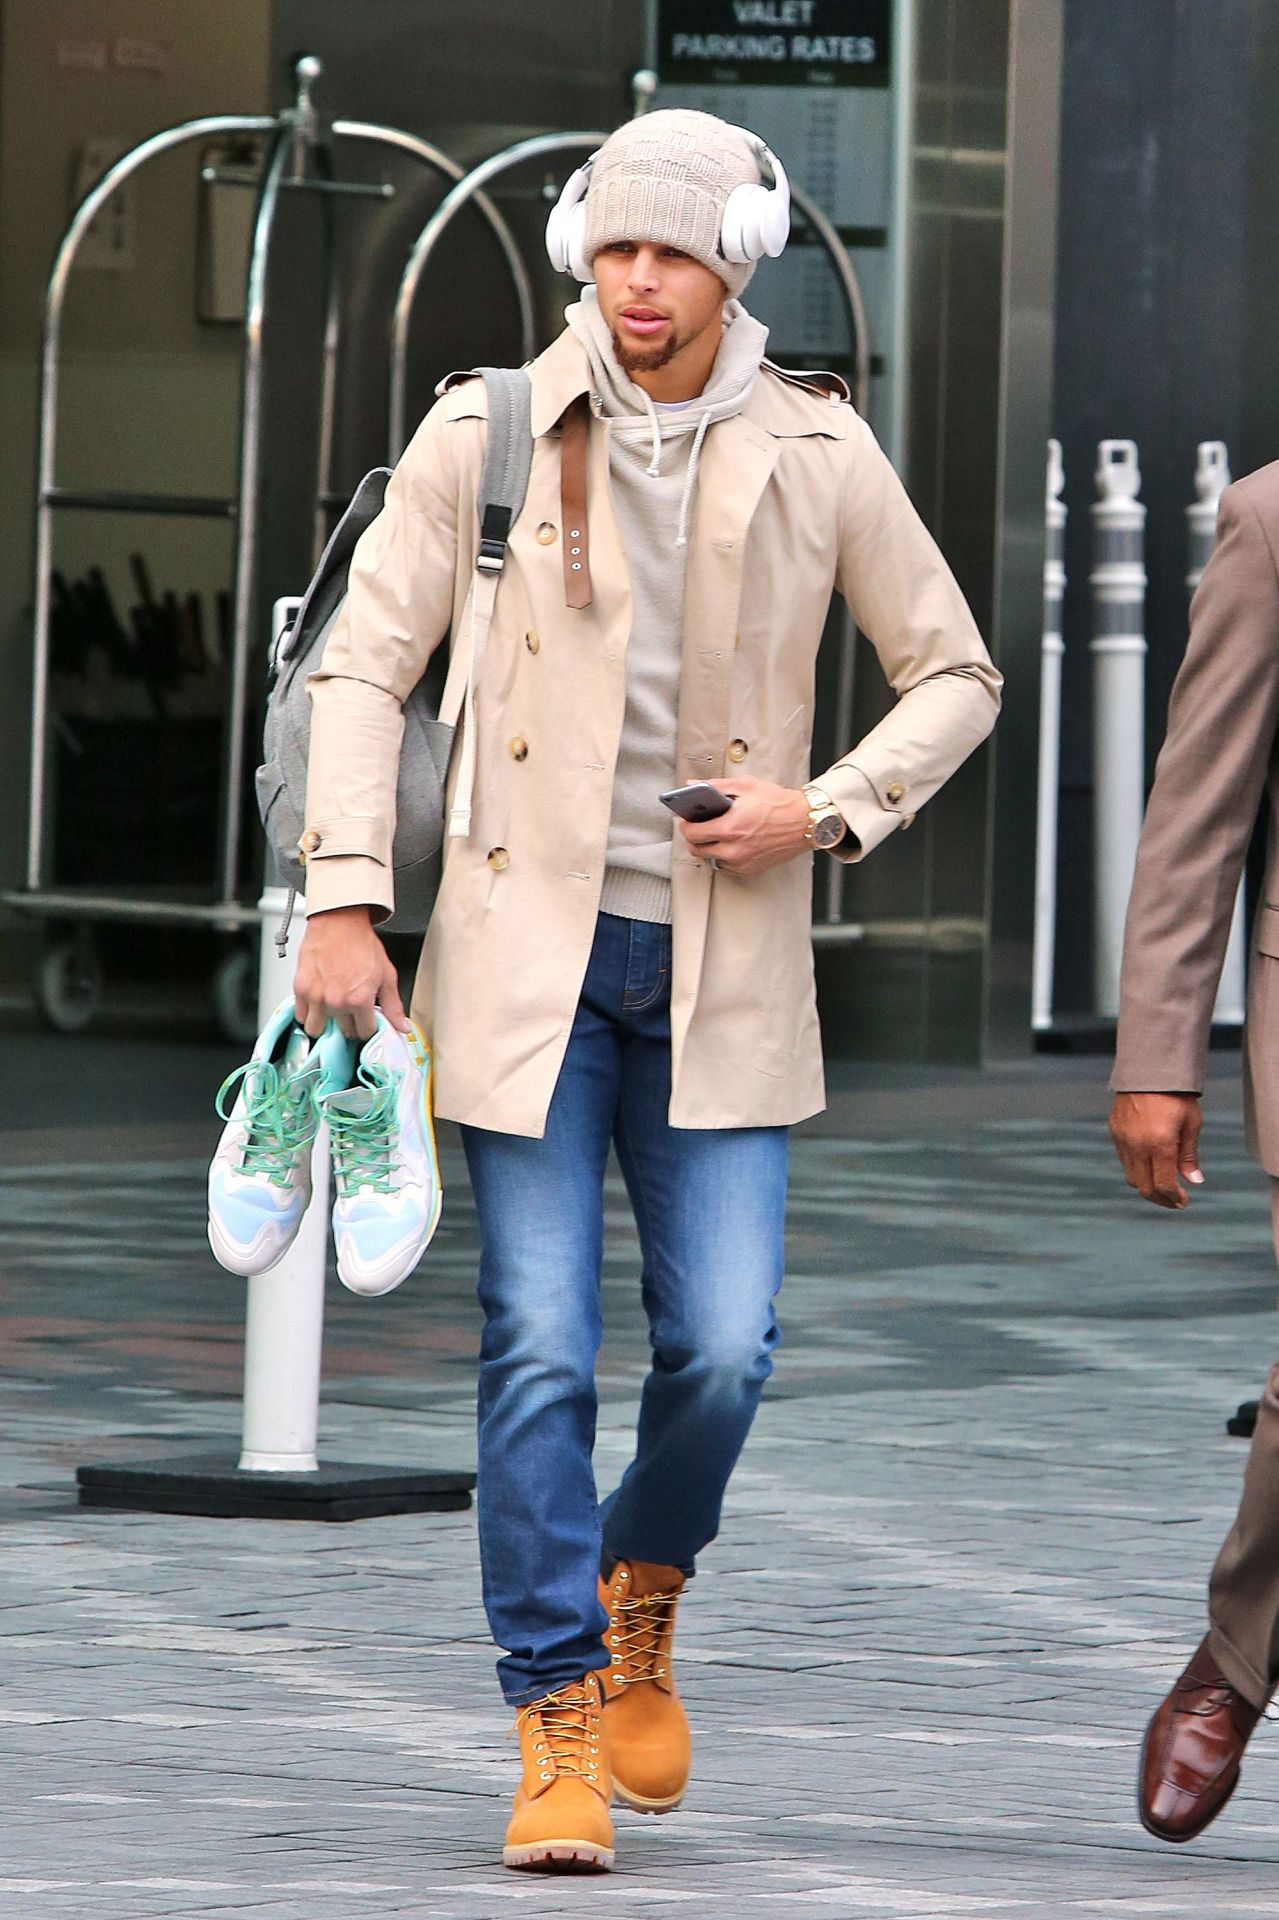 celebritiesofcolor: Stephen Curry out in Toronto - D E N N Y ...